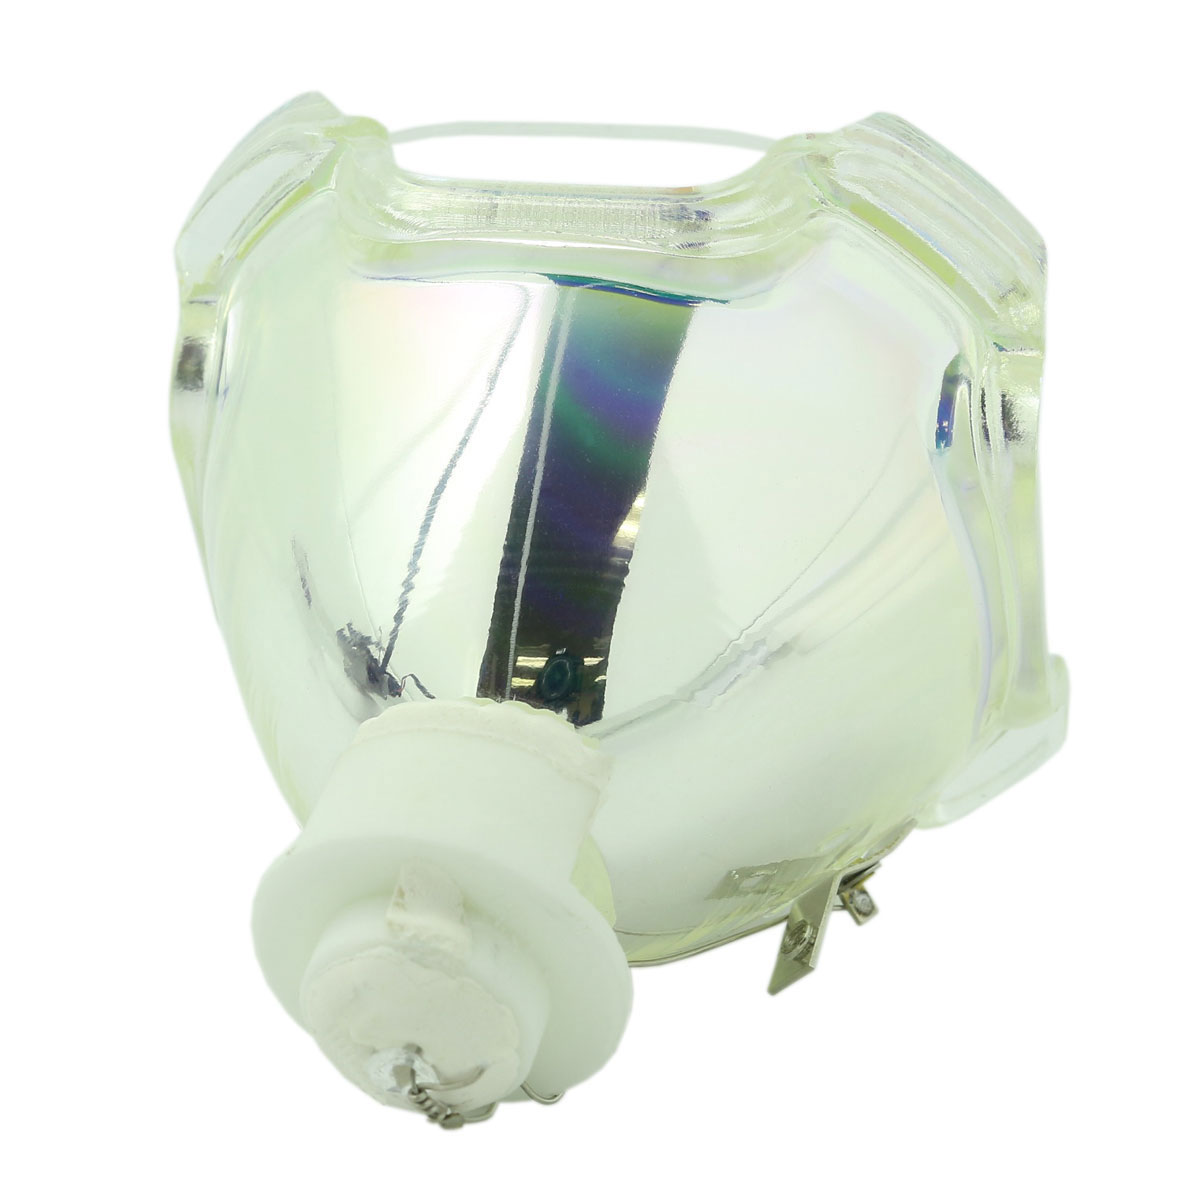 Lutema Platinum for Sanyo PLC-XT3200 Projector Lamp with Housing (Original Philips Bulb Inside) - image 3 of 5